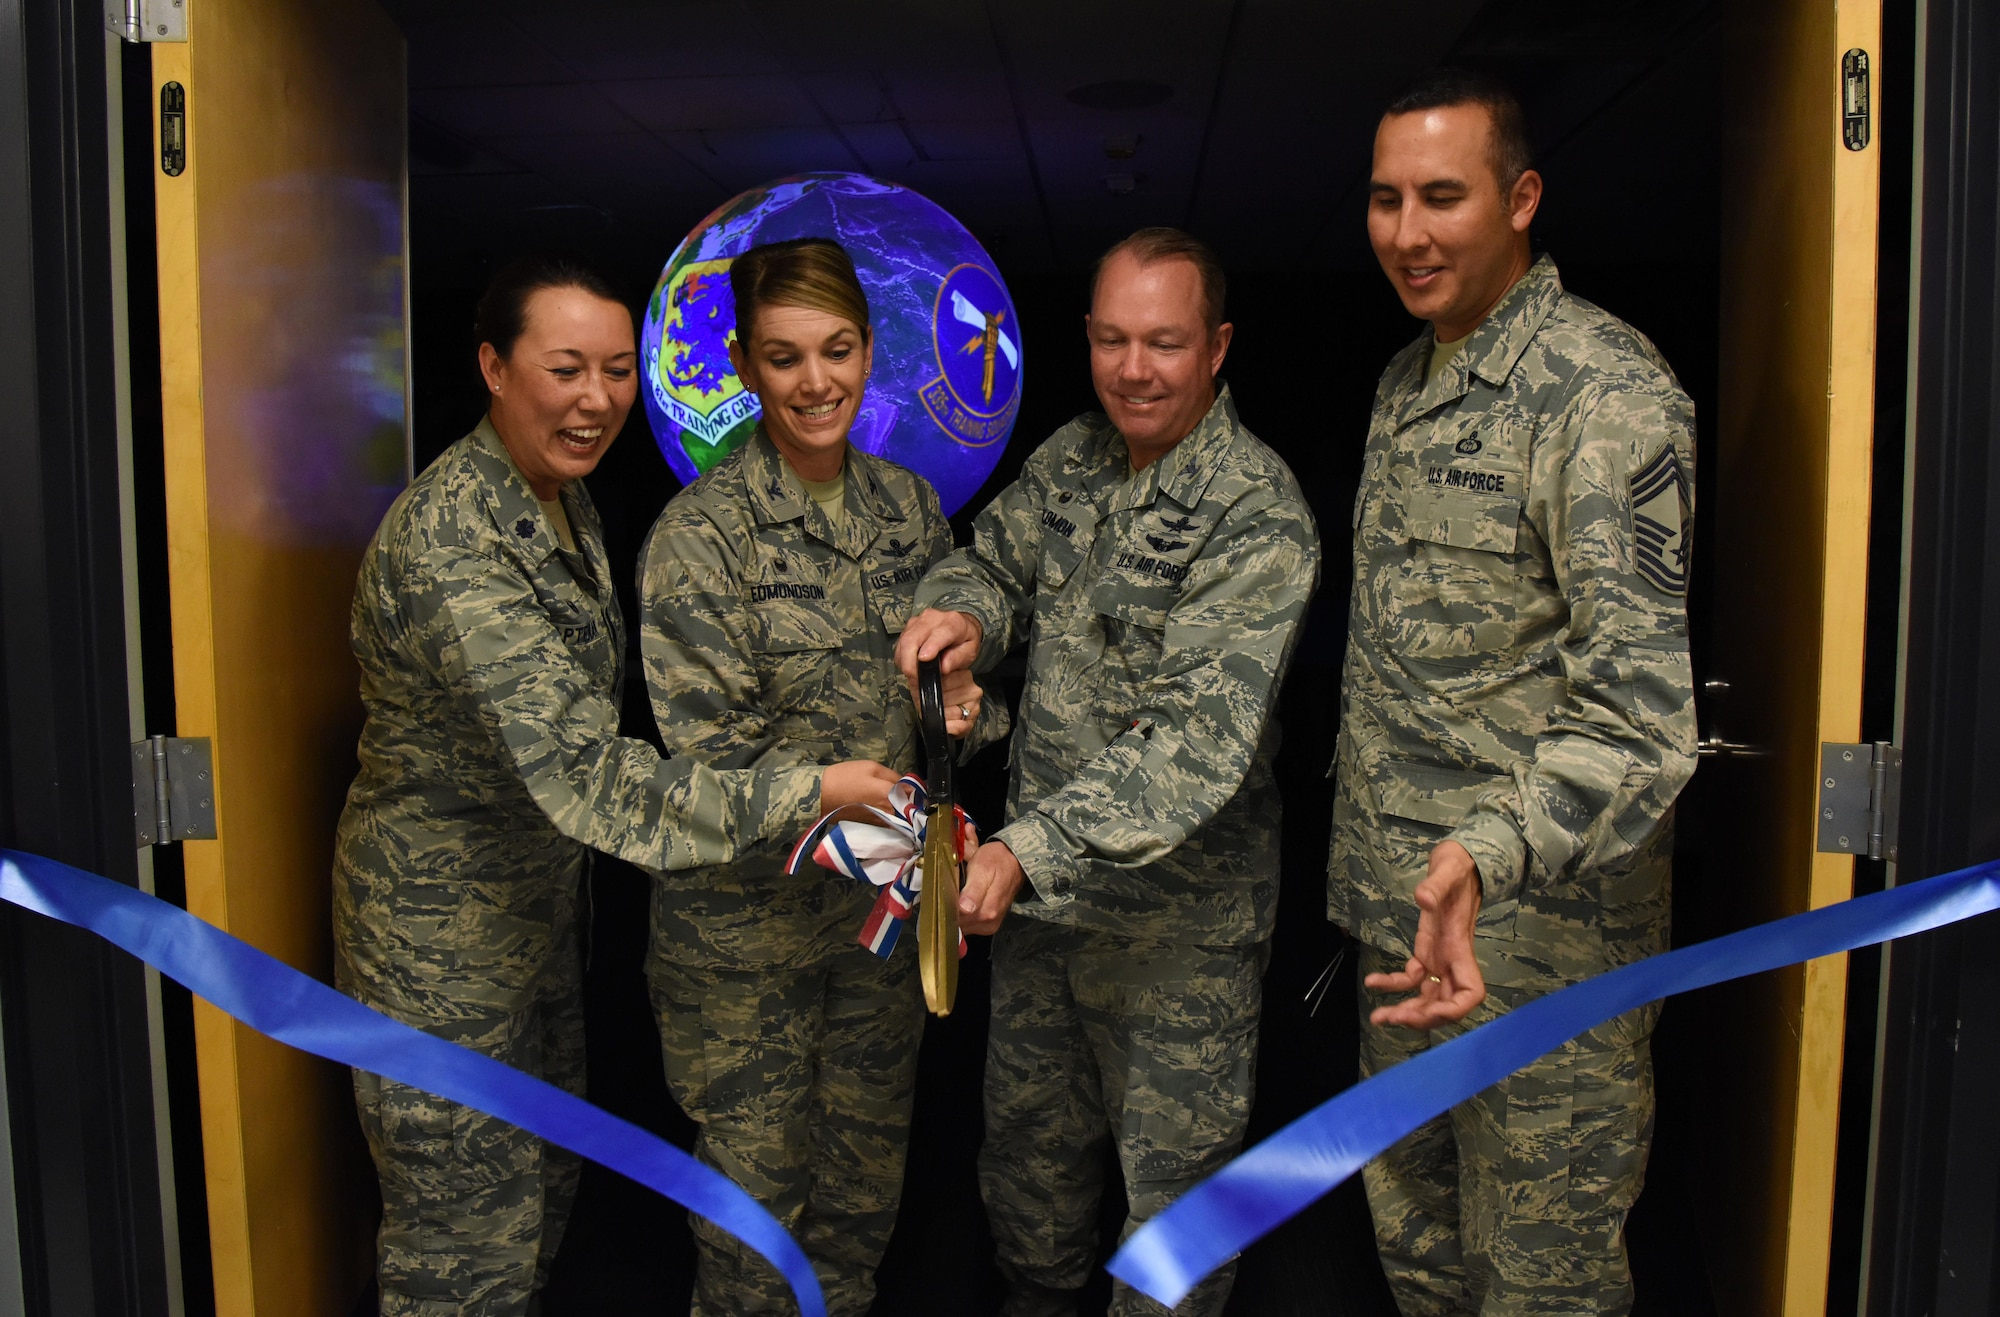 Lt. Col. Elizabeth Aptekar, 335th Training Squadron commander; Col. Michele Edmondson, 81st Training Wing commander; Col. Scott Solomon, 81st Training Group commander, and Chief Master Sgt. Randy Sabin, Air Education and Training Command weather functional manager, participate in a ribbon cutting ceremony to unveil a Science on a Sphere at the Weather Training Complex March 23, 2017, on Keesler Air Force Base, Miss. This latest training aid displays planetary data onto a suspended carbon-fiber sphere helping instructors enhance student's understanding of the atmosphere. (U.S. Air Force photo by Kemberly Groue)